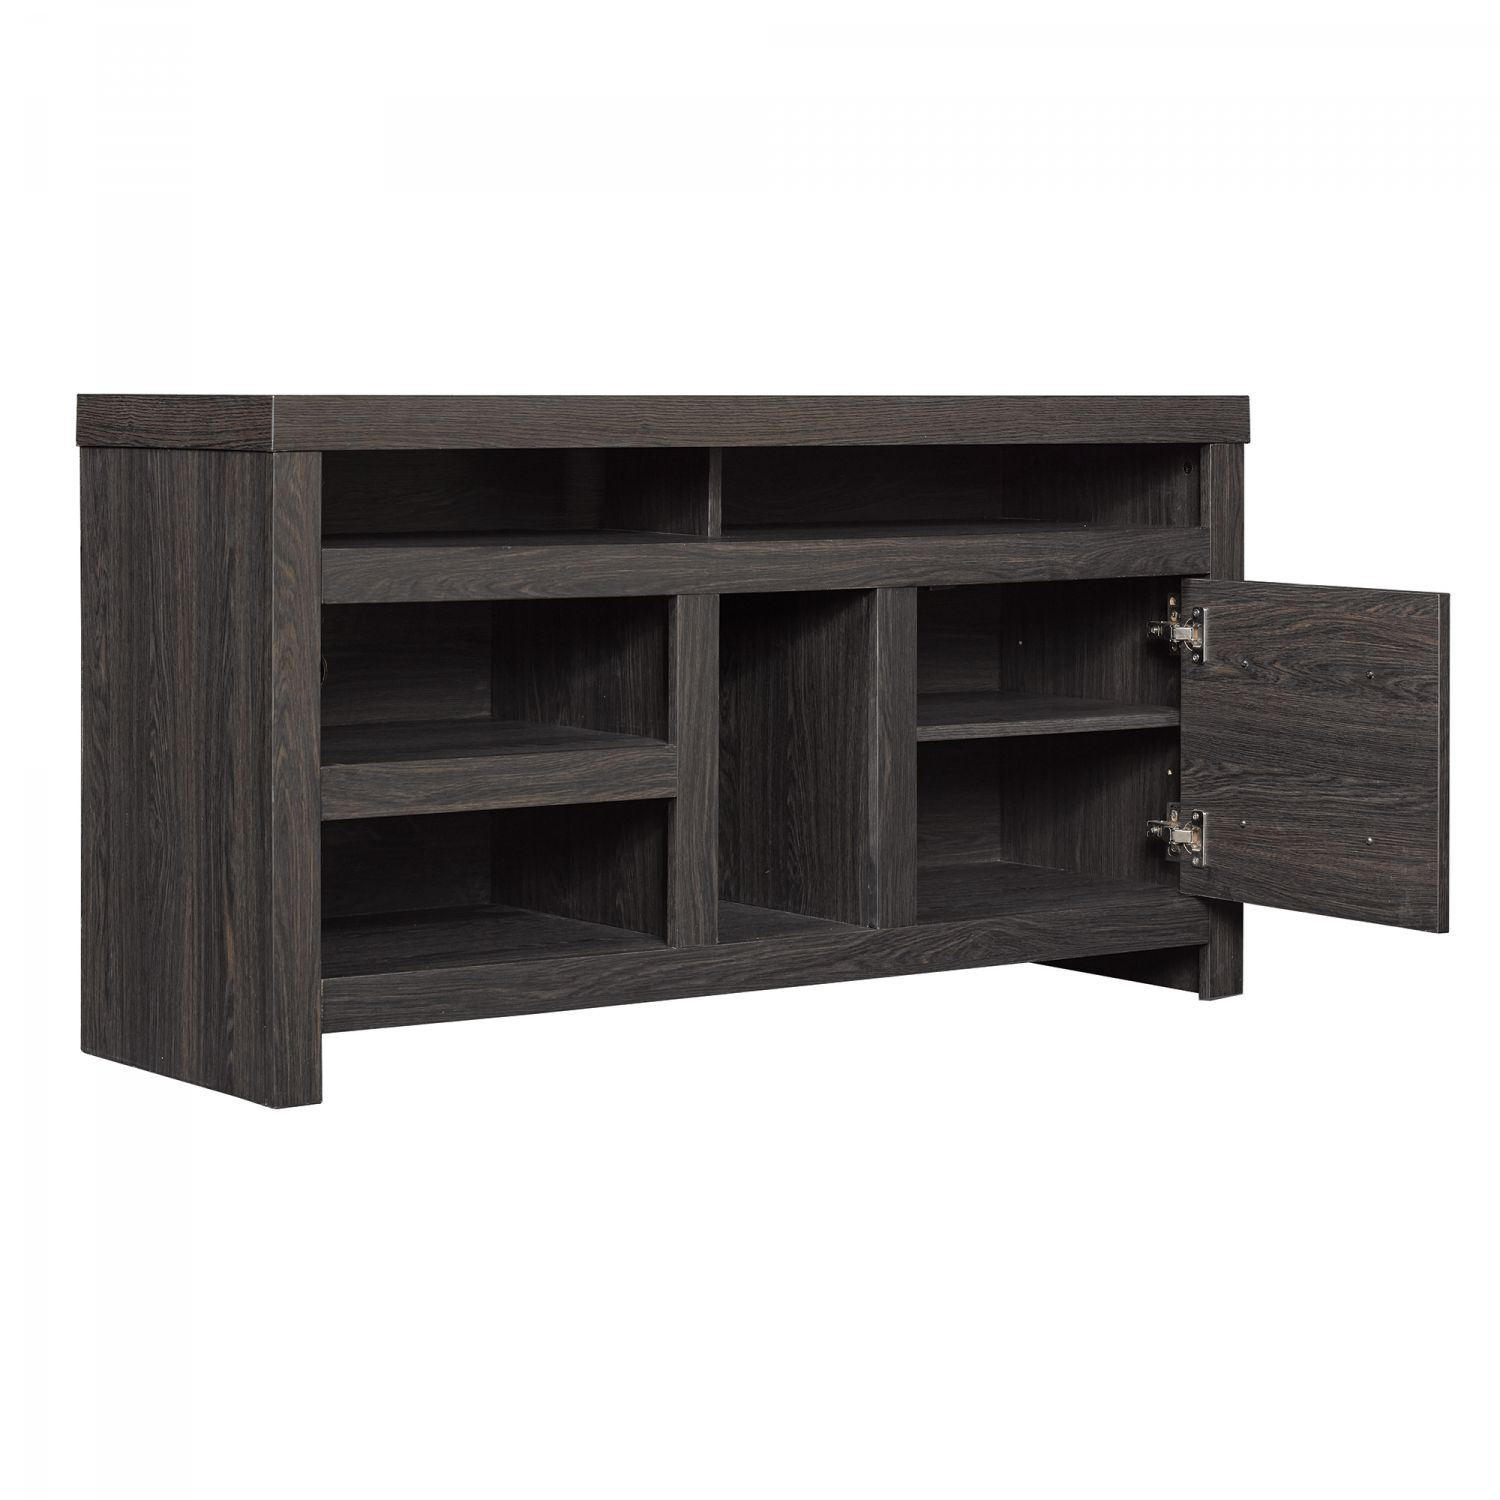 Everson Tv Stand With Gaming Console Storage D Tc48 6356 Pw07